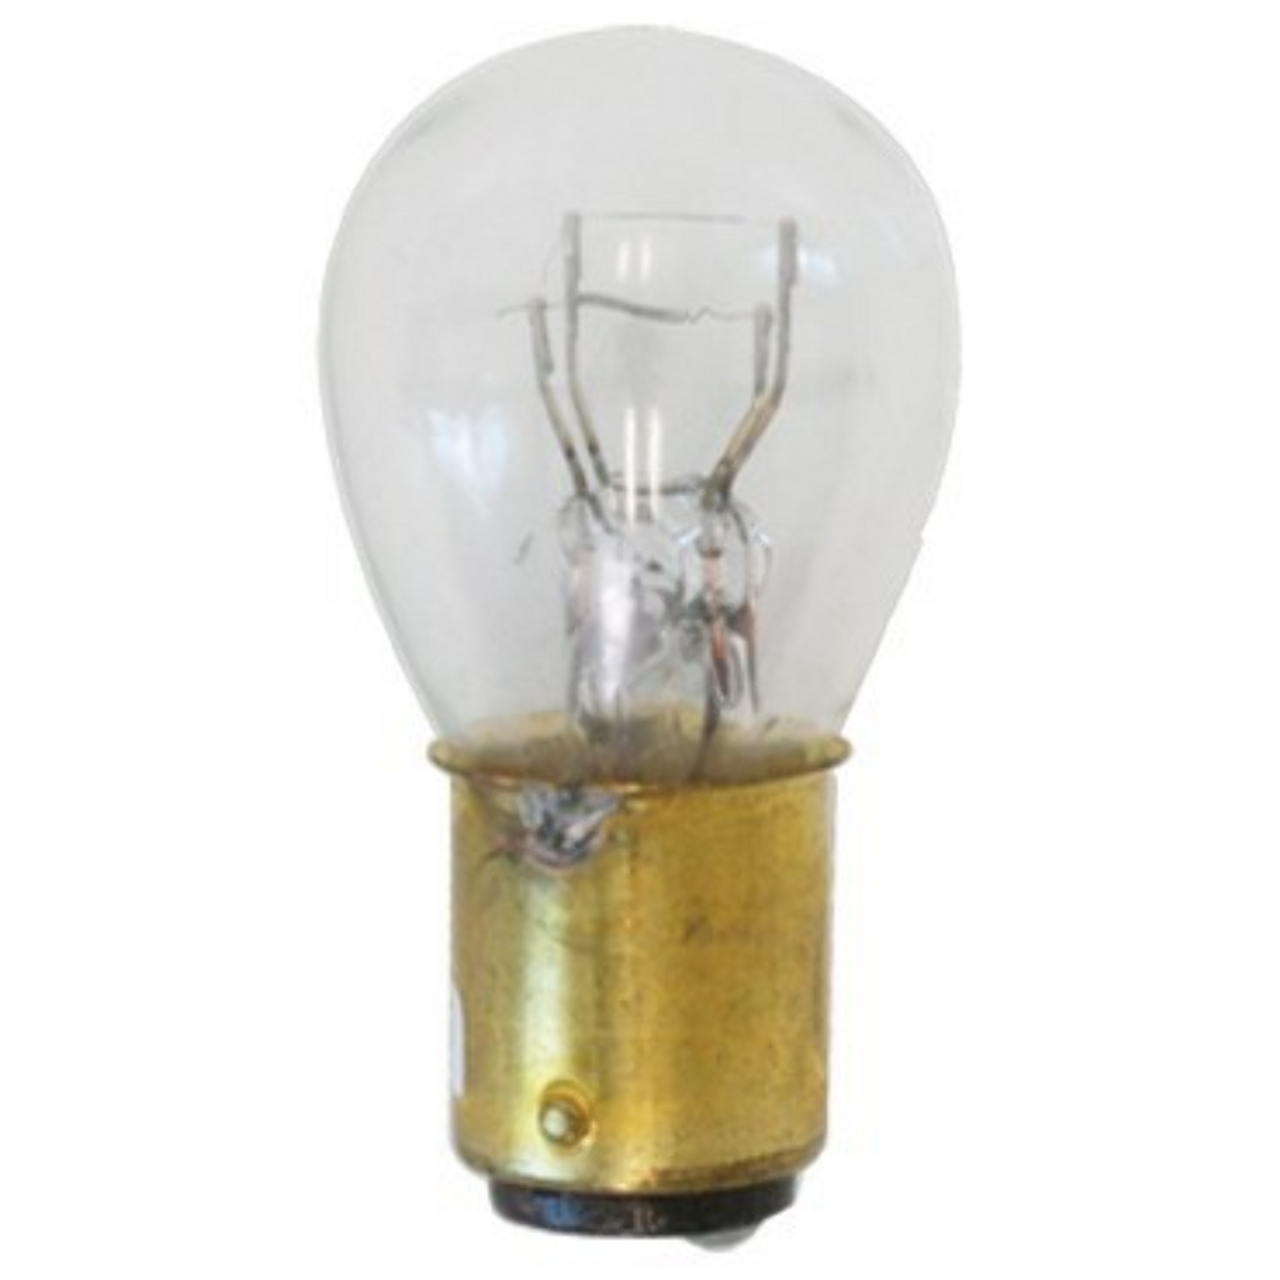 6V, #1158 Bulb, 21/32 Candle Power, Double Contact w/Straight Pins, Box of 10